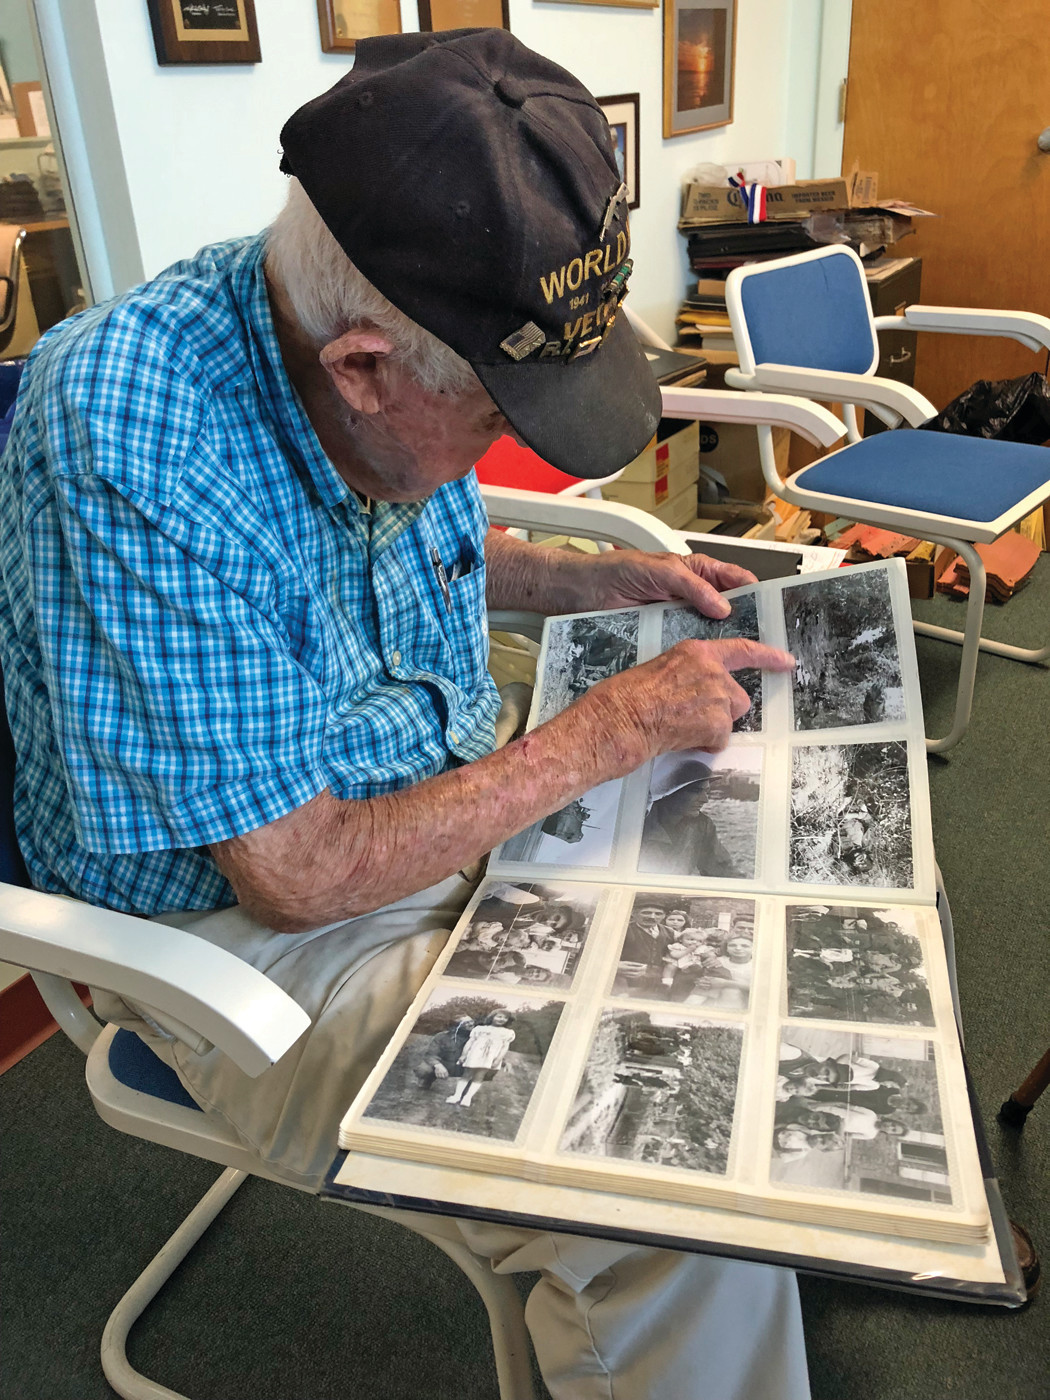 LIVING HISTORY: Sanford Tanner, 97 years old, flips through his photo albums at the Beacon headquarters on Tuesday. He joined the Army at 22 years old and landed in France on D-Day.